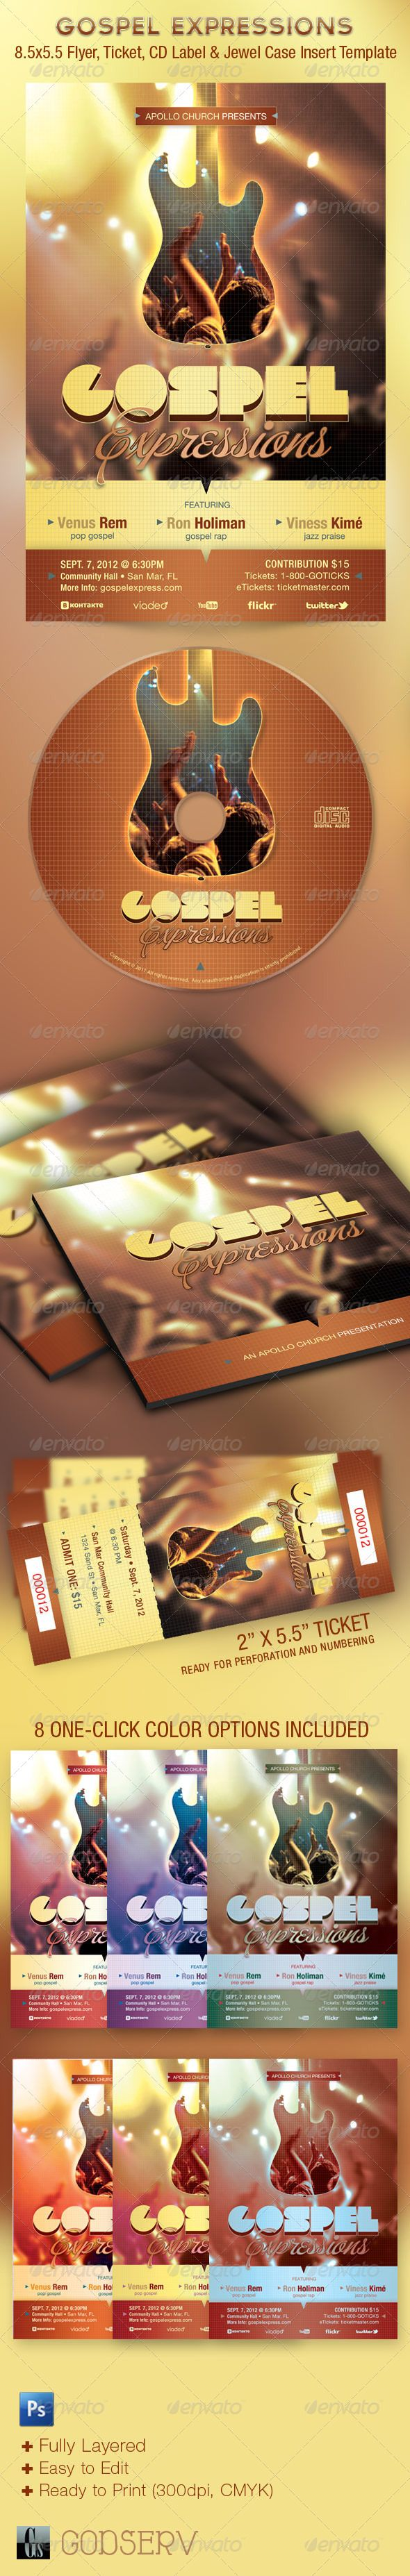 Gospel Expressions Church Flyer Ticket CD Template — Photoshop PSD #event #church • Available here → https://graphicriver.net/item/gospel-expressions-church-flyer-ticket-cd-template/1684468?ref=pxcr